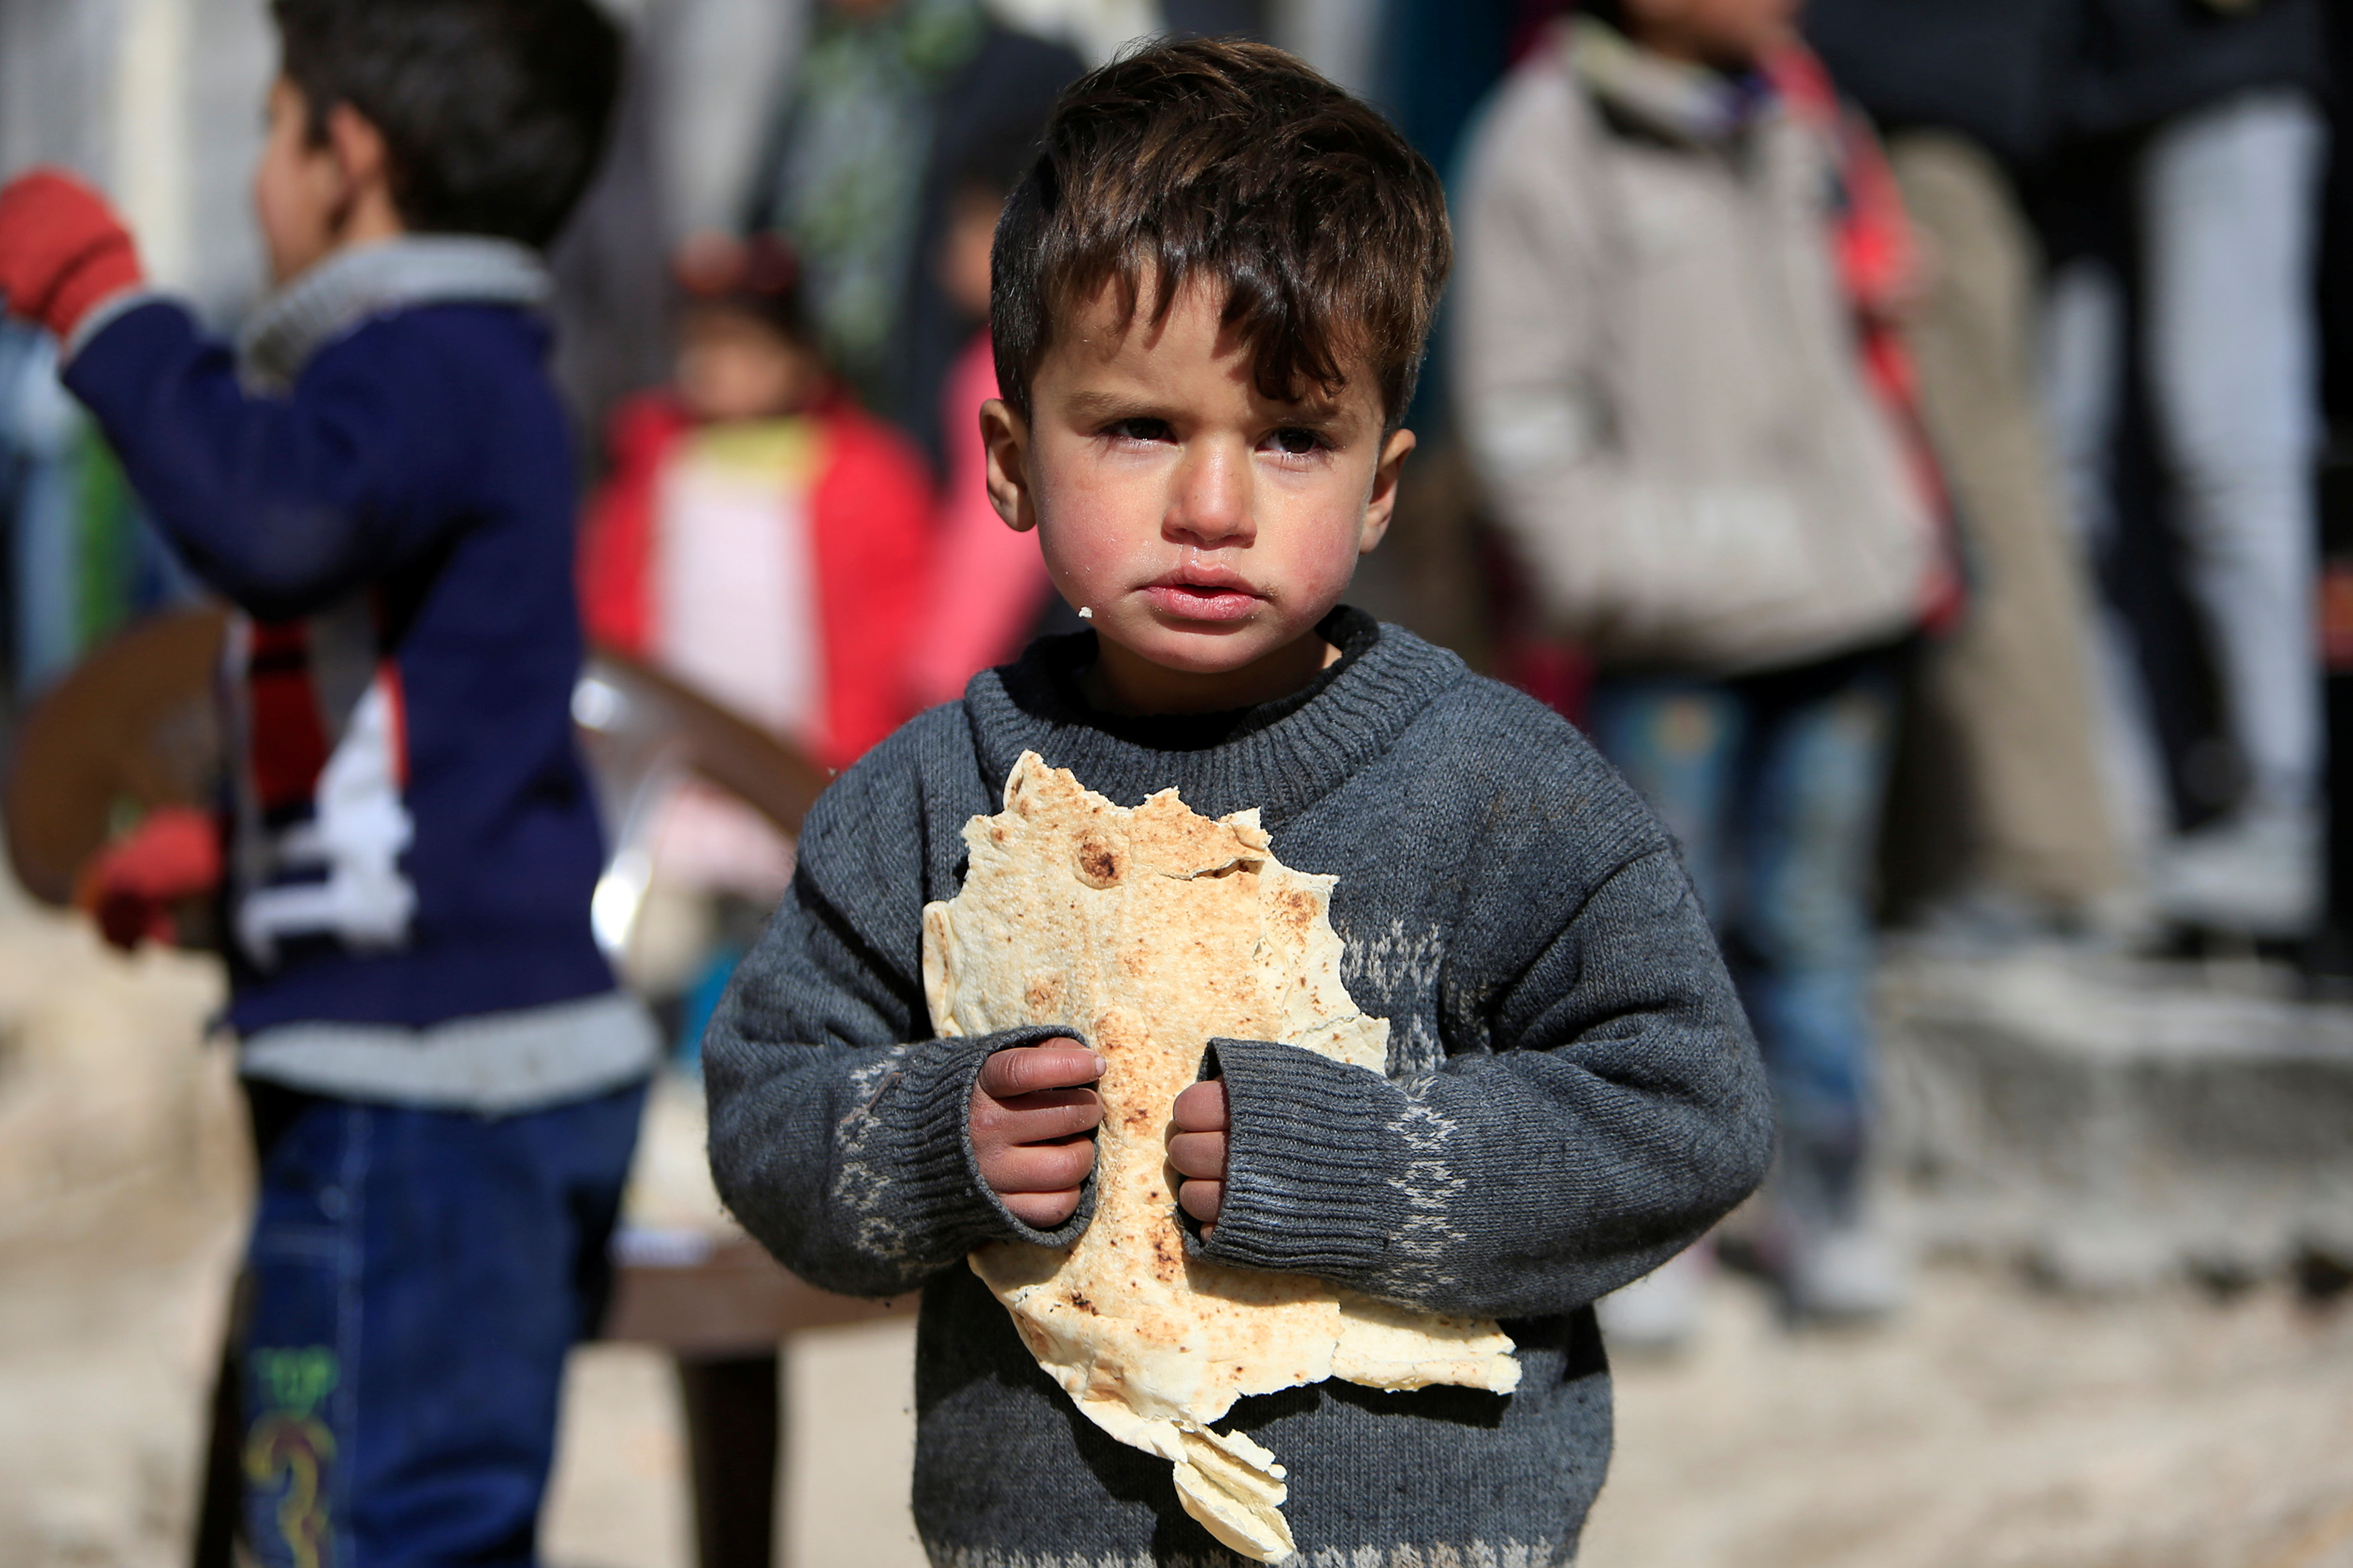 A displaced boy carries bread at a shelter in Jibreen, on the outskirts of Aleppo, Syria February 1, 2017. REUTERS/Ali Hashisho - RTX2Z7ID